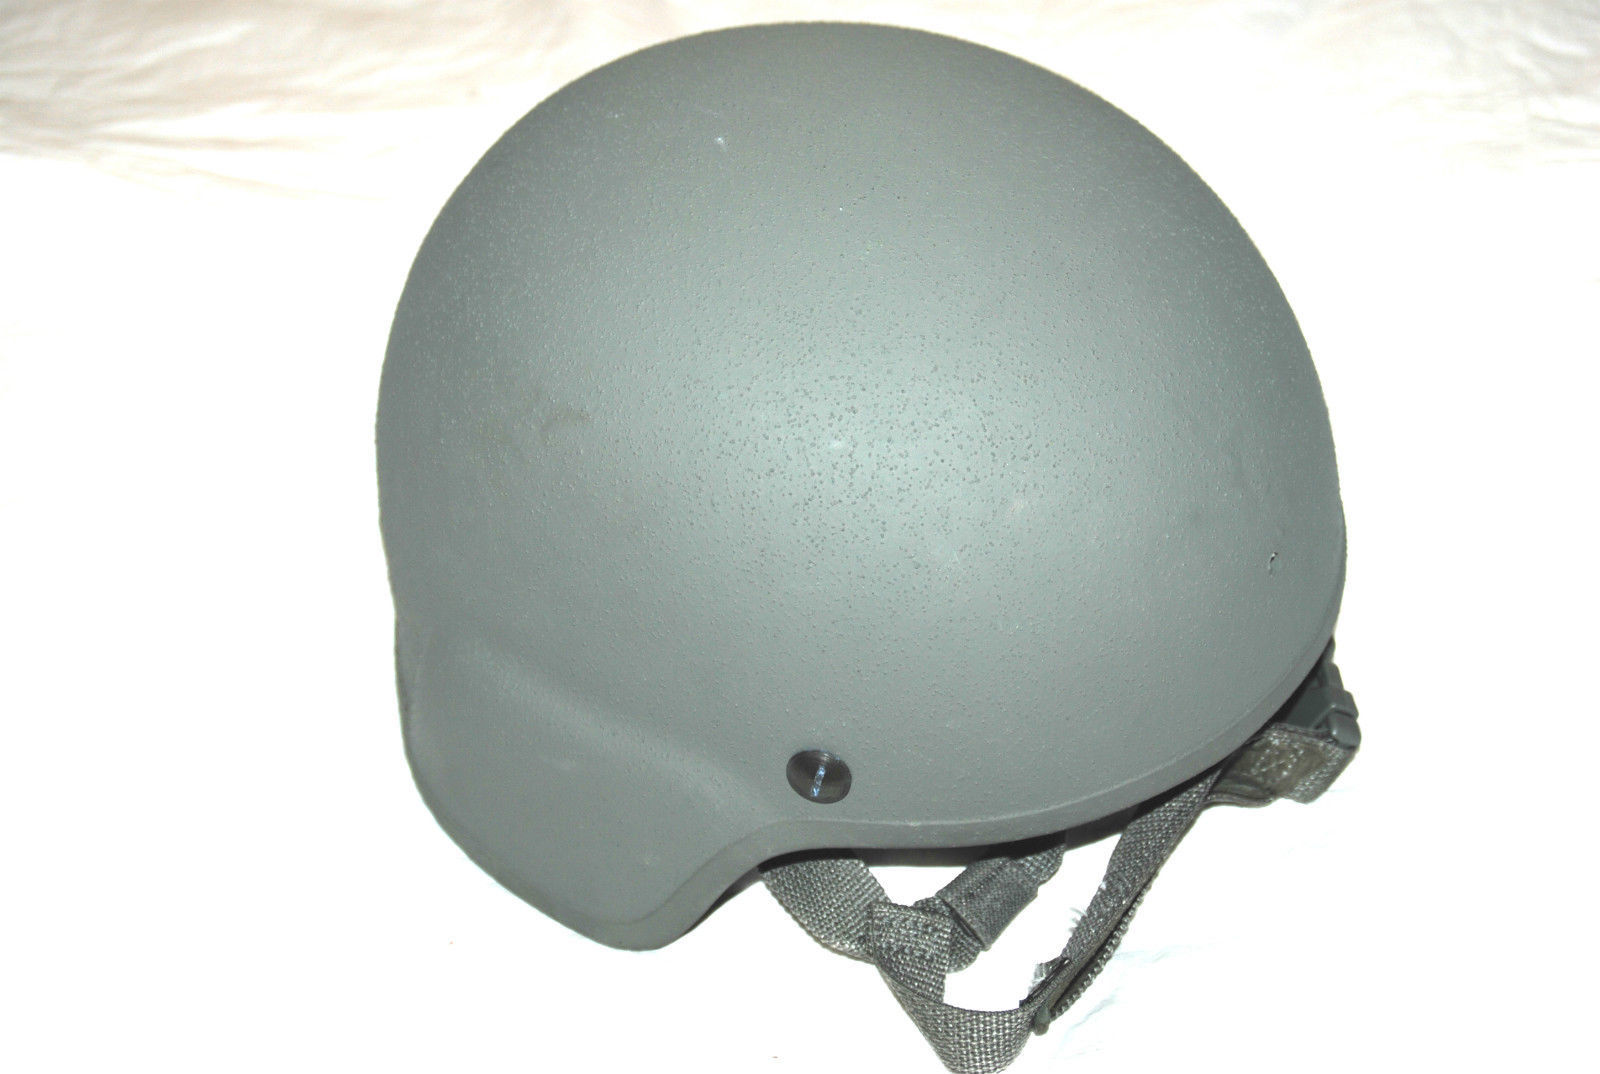 NEW GENTEX HELMET - MEDIUM